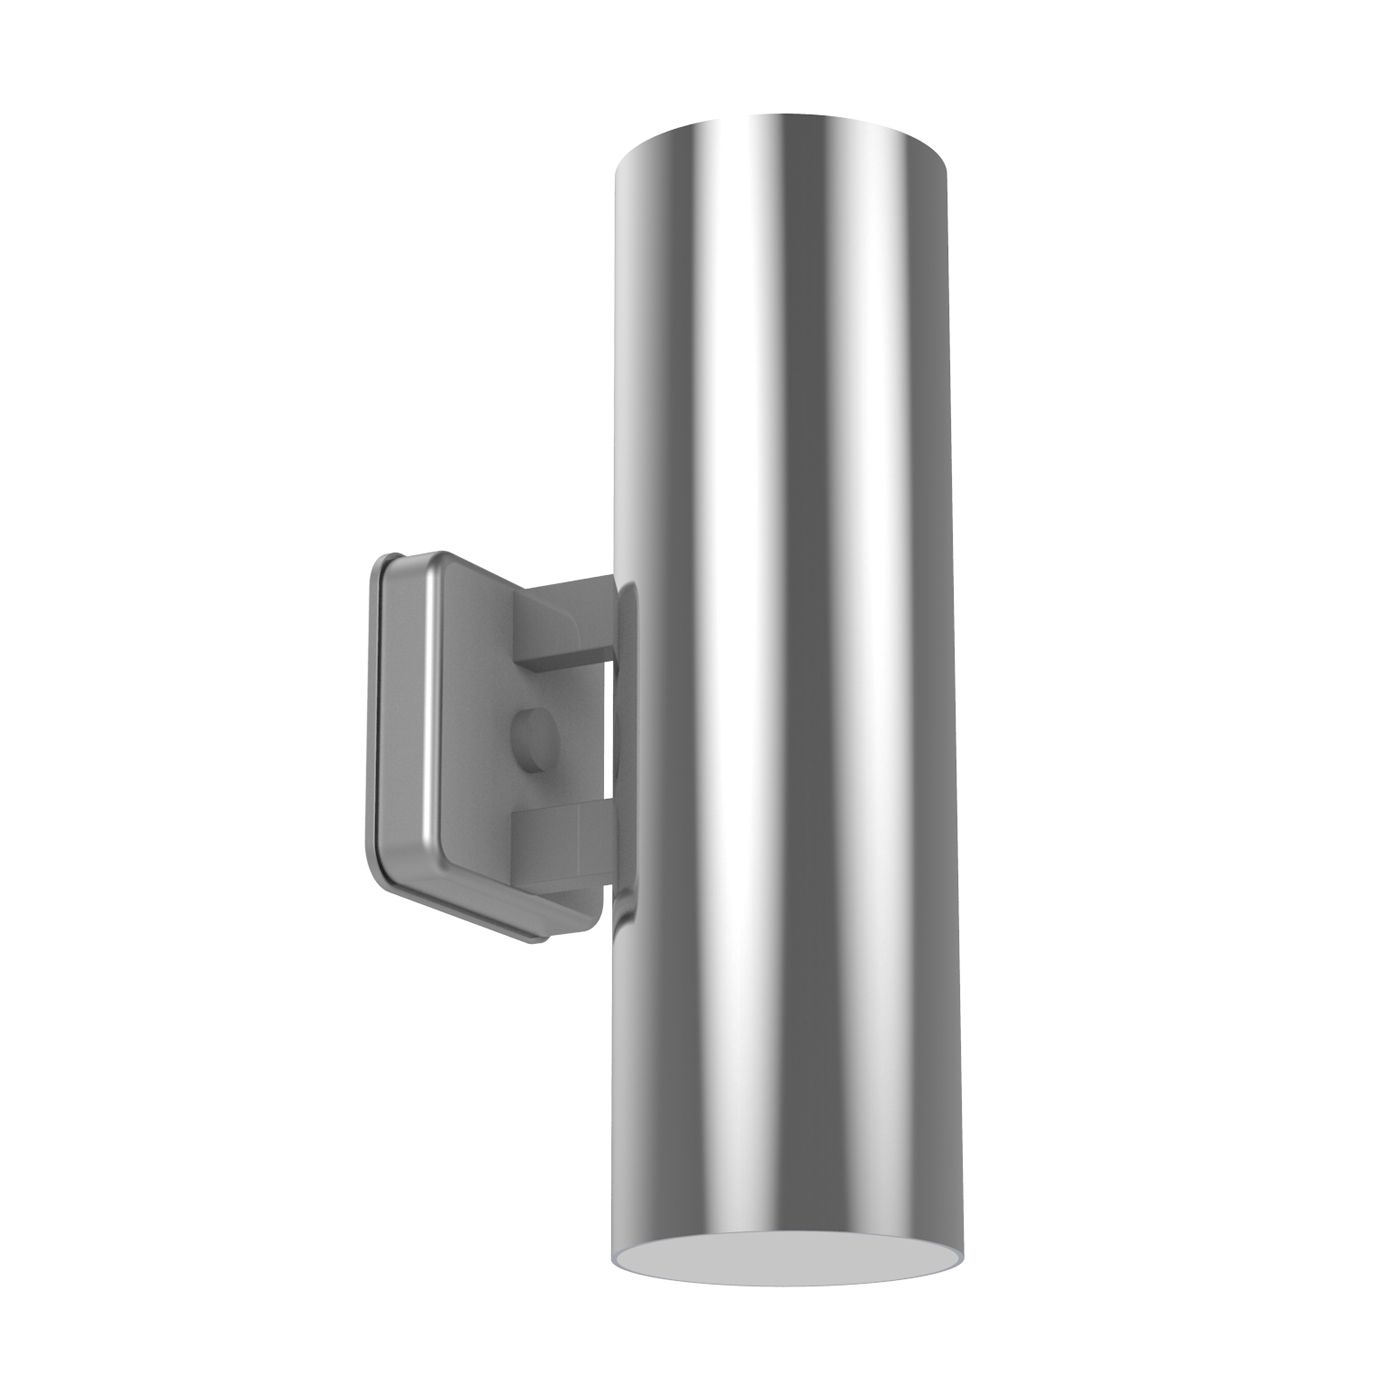 Inspiration about Remcraft Lighting 310 Series Outdoor Up/down Light Wall Sconce At Regarding Outdoor Wall Sconce Up Down Lighting (#5 of 15)